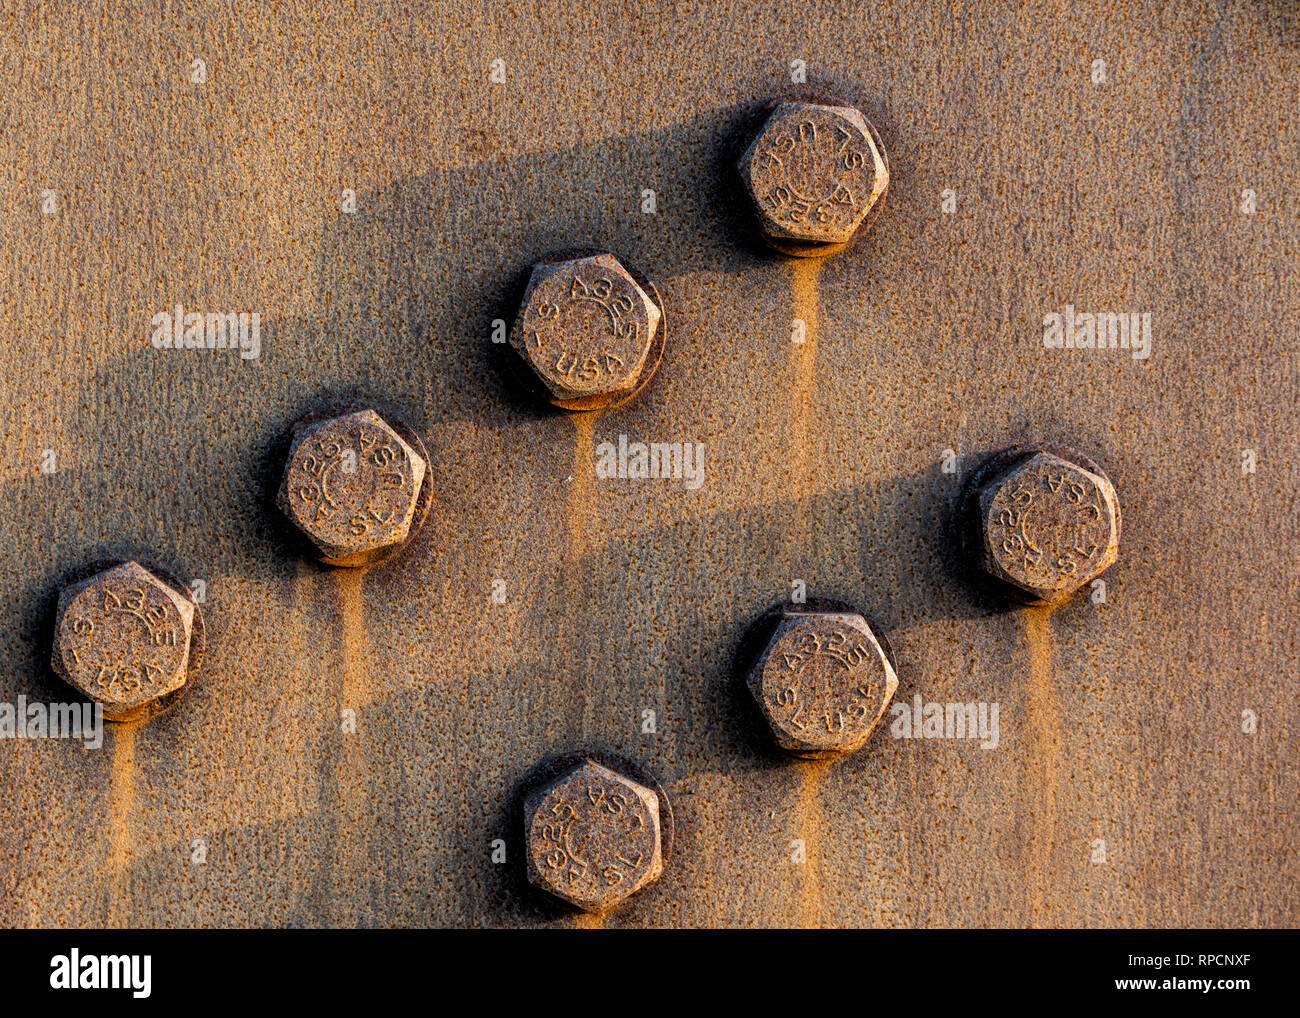 Groups of rusty weathered industrial strength bolts. - Stock Image